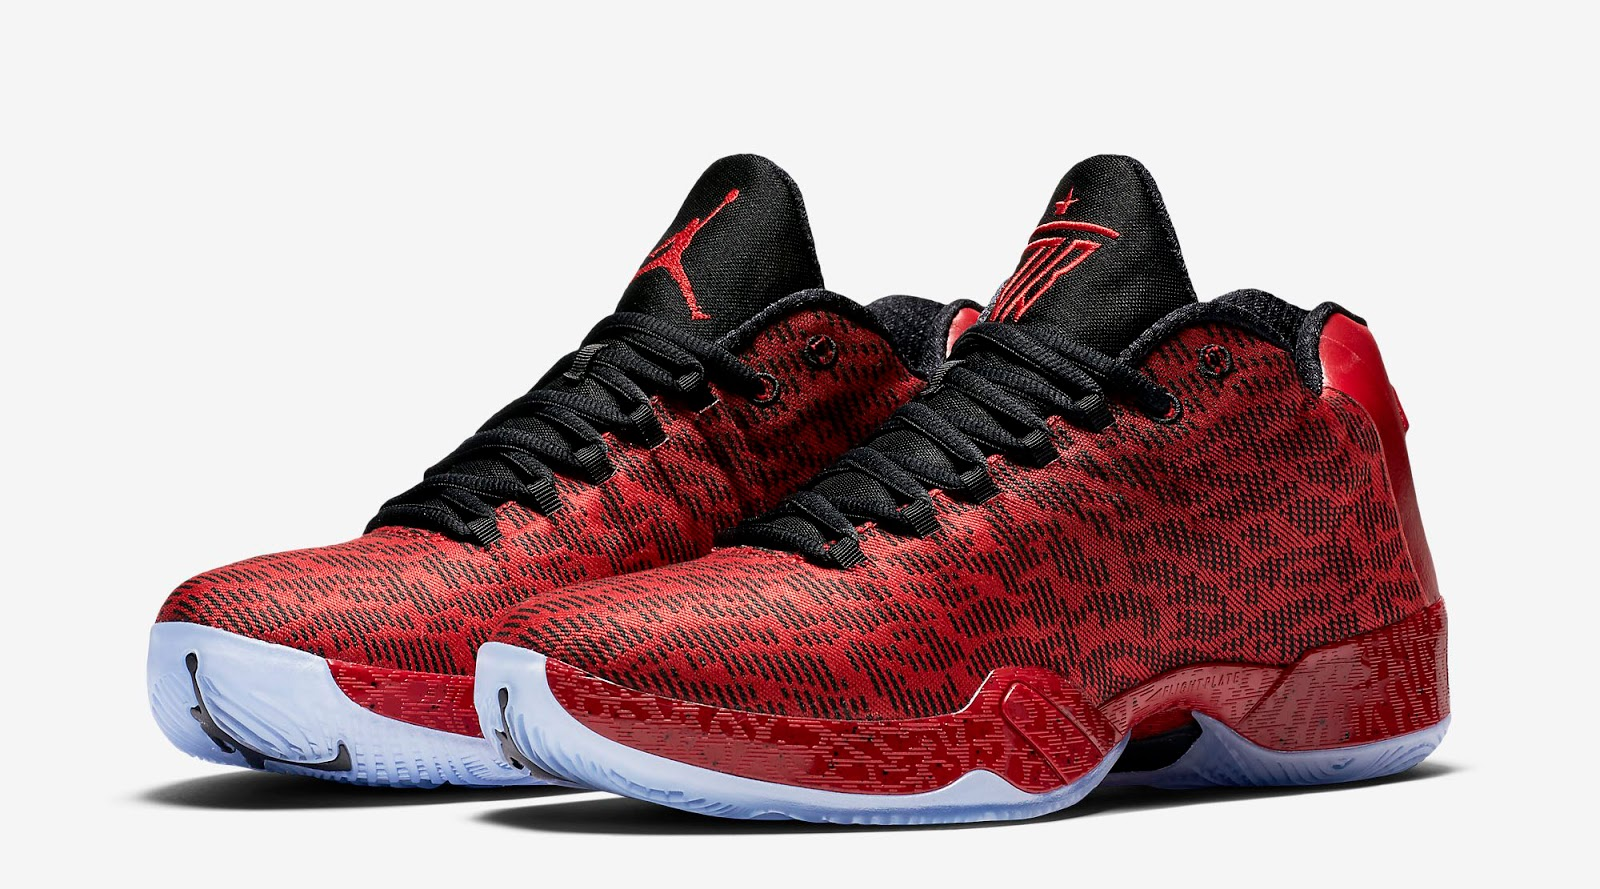 detailed look 1ce1a 9c252 Air Jordan XX9 Low Butler PE